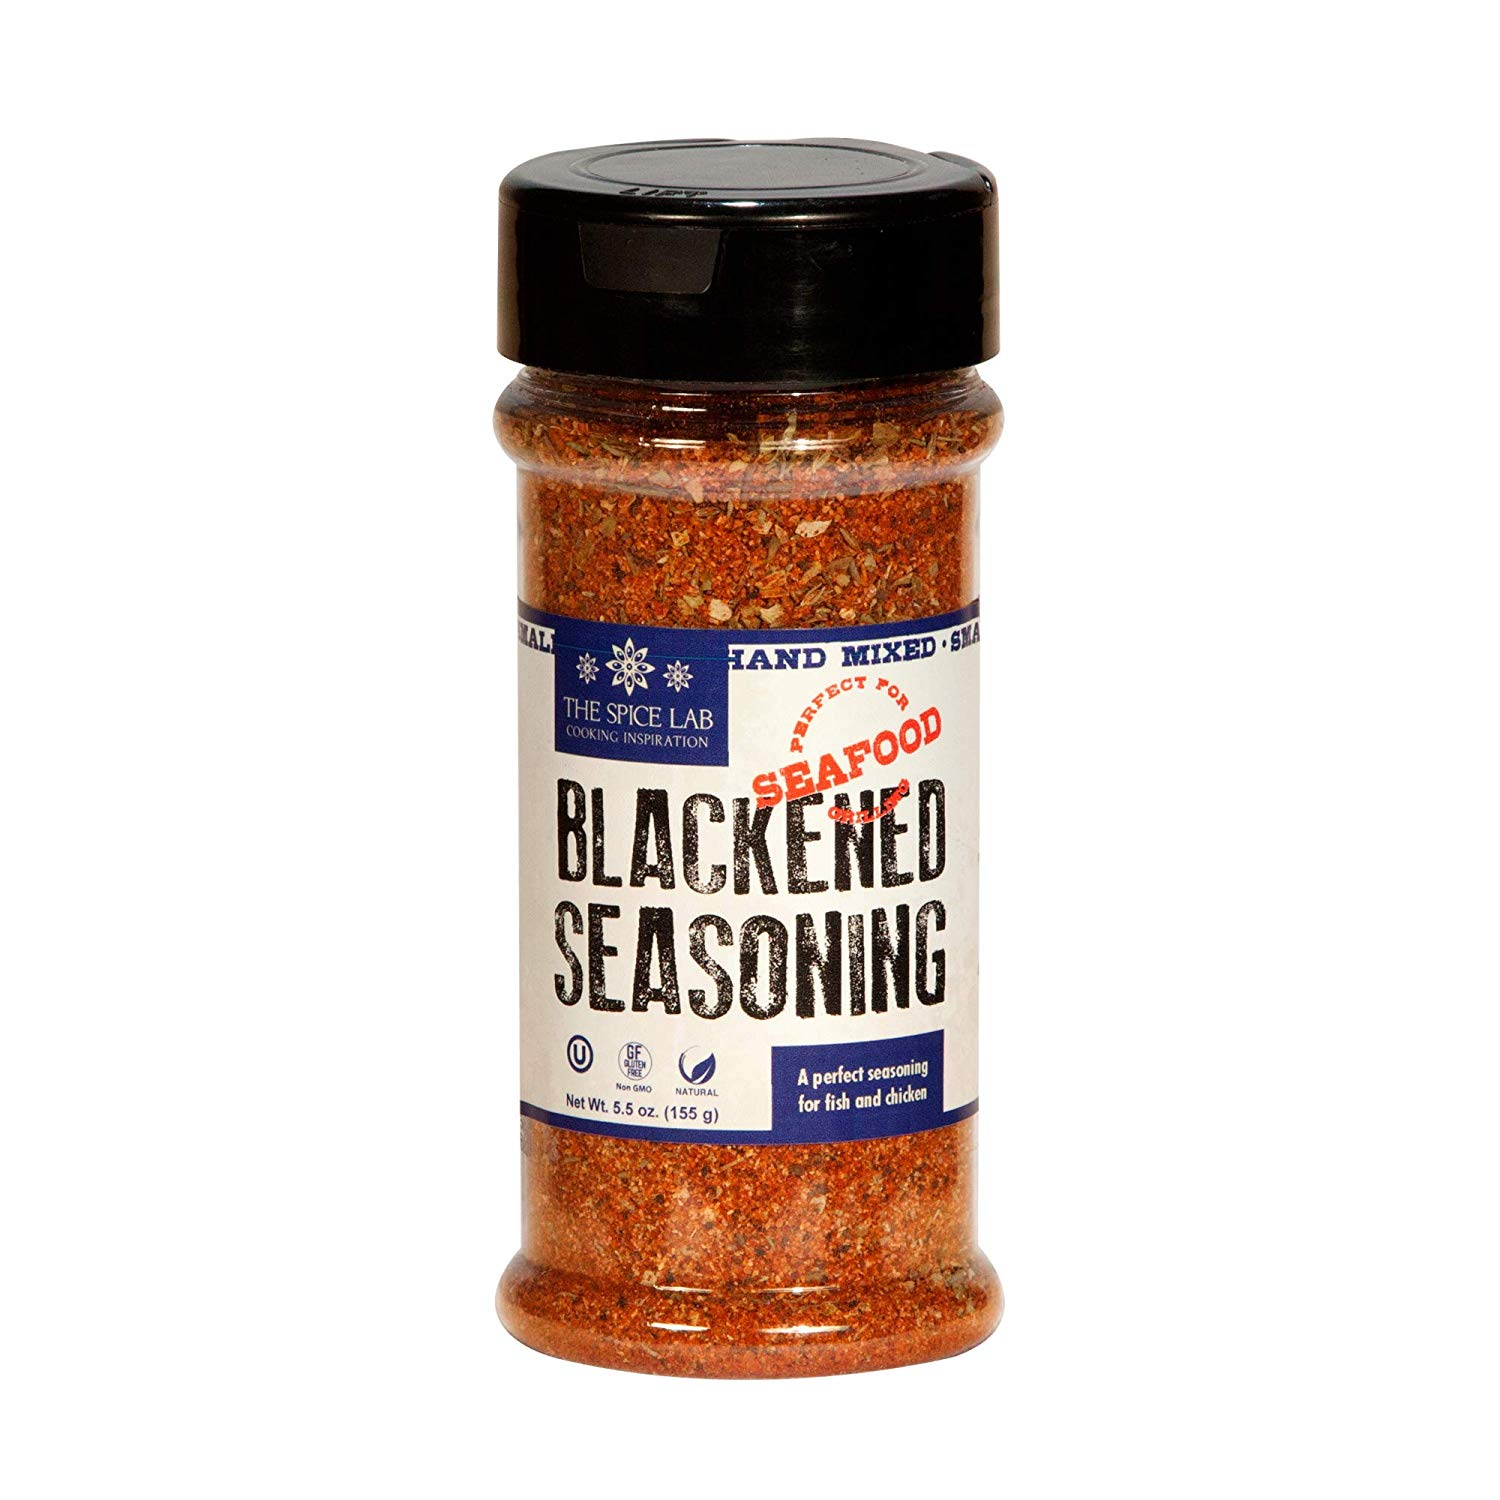 This New Orleans-style blackening blend adds a pop of flavor to seafood, shellfish or chicken. Simply coat meat in oil and season with the spice blend before cooking.